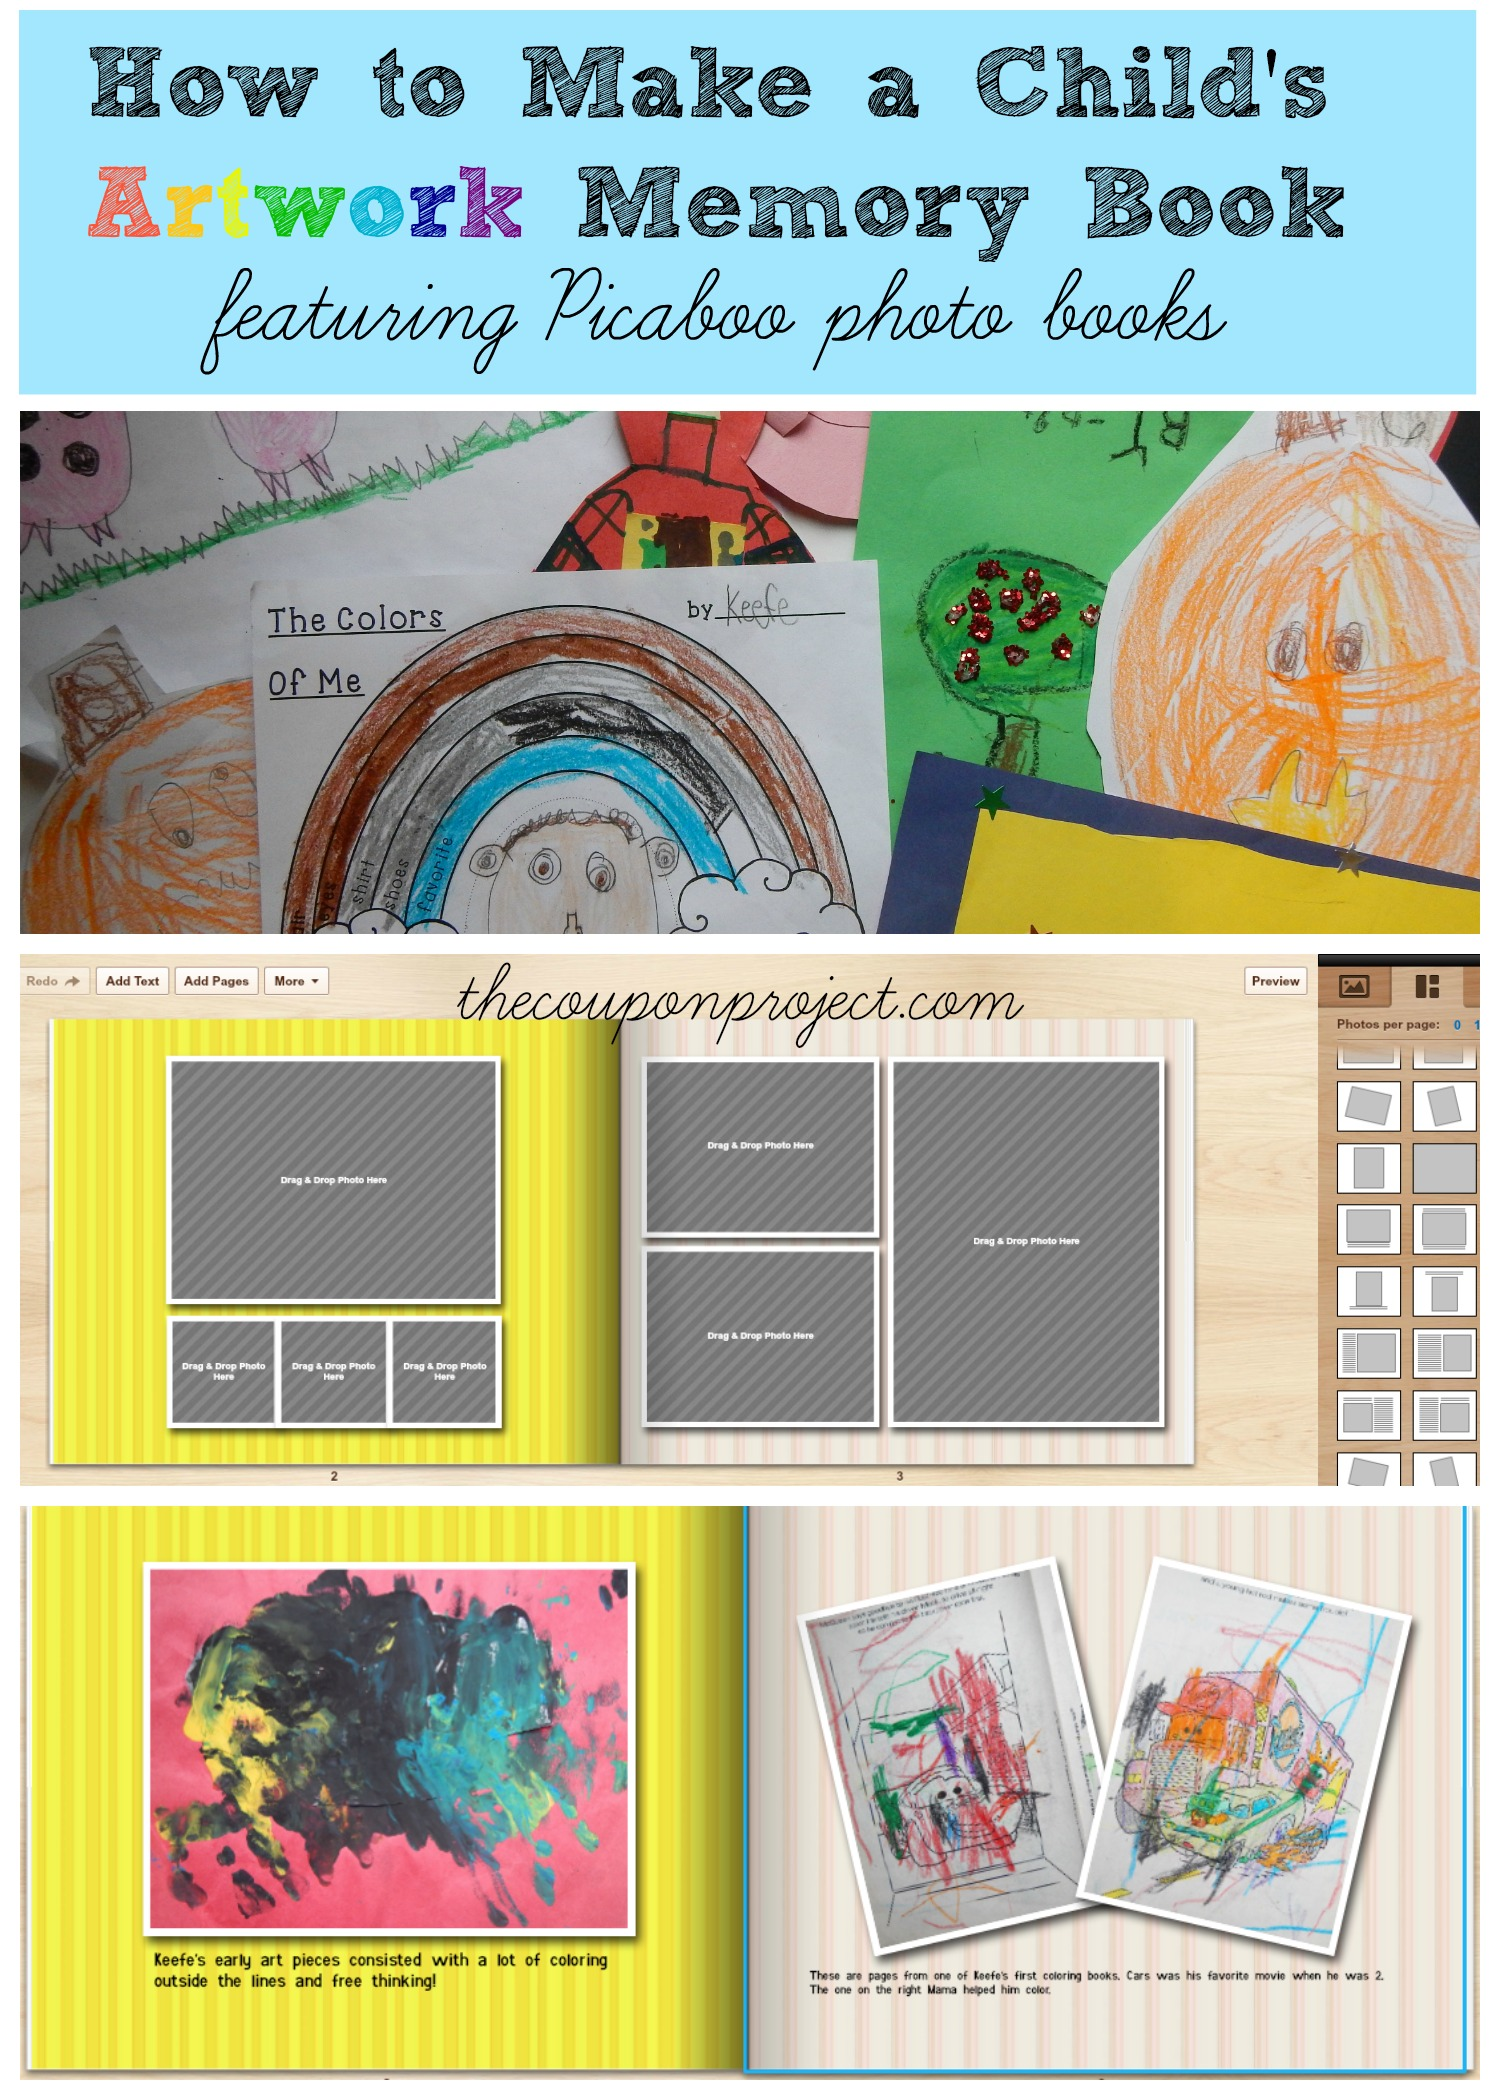 How To Make A Book : How to make a child s artwork memory book featuring